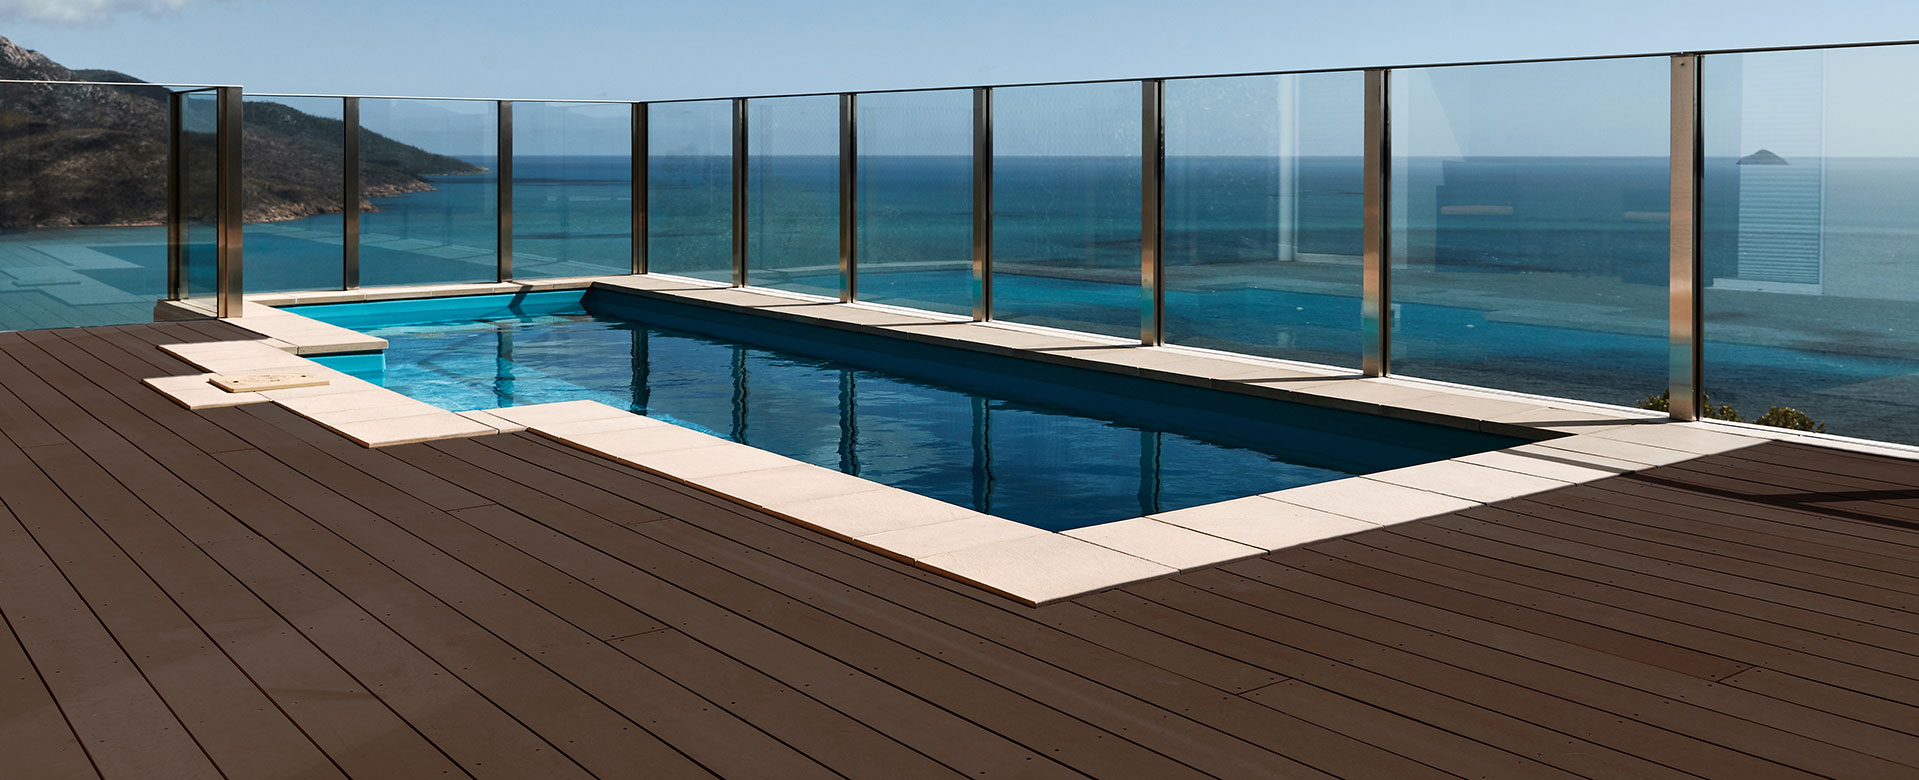 Decking for the 21st century. Beautiful materials, without the upkeep.